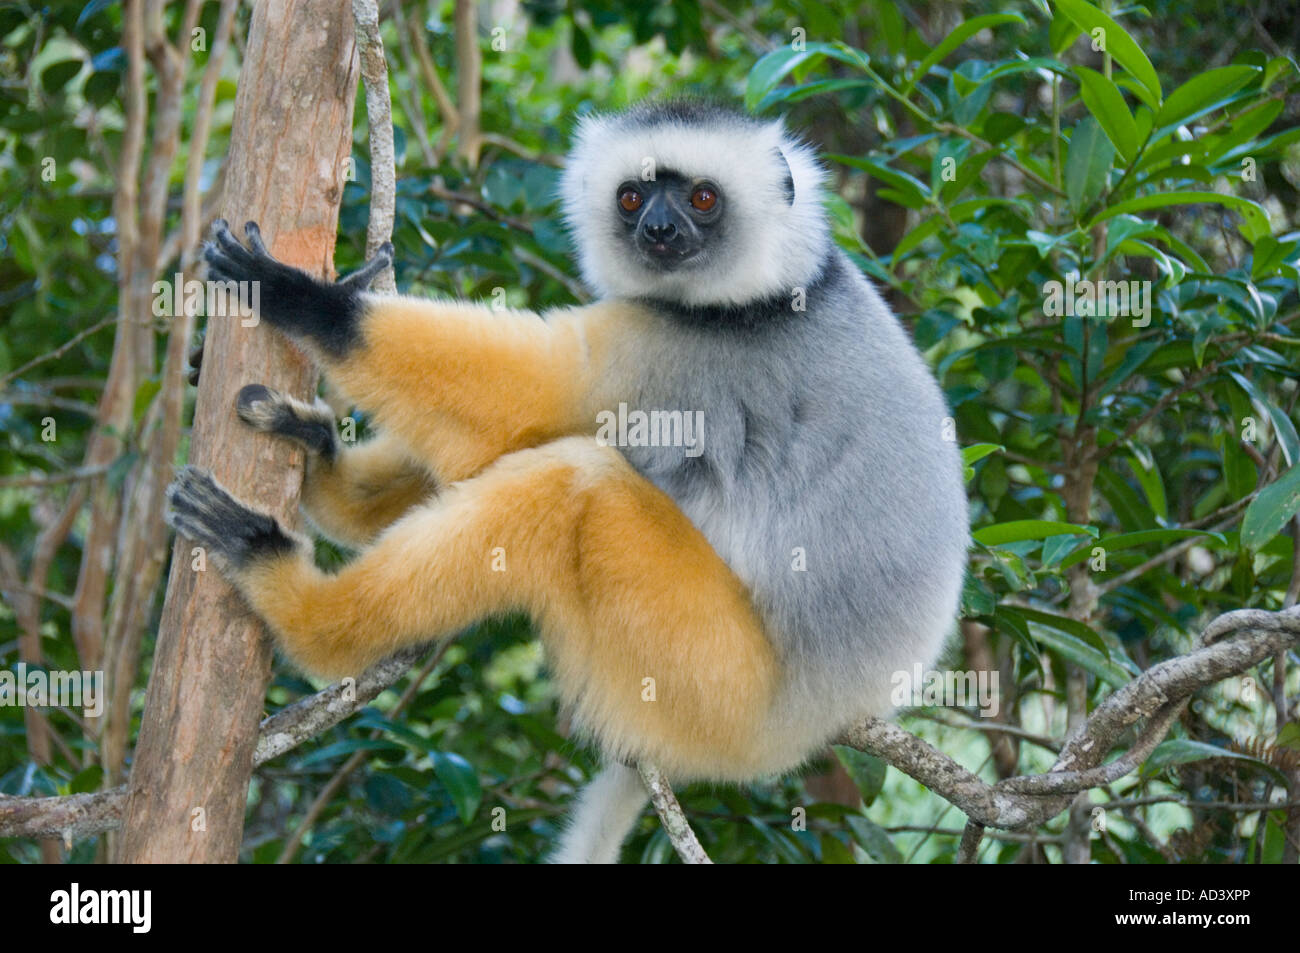 Zoo Palast Roter Teppich Primates Stockfotos And Primates Bilder Alamy